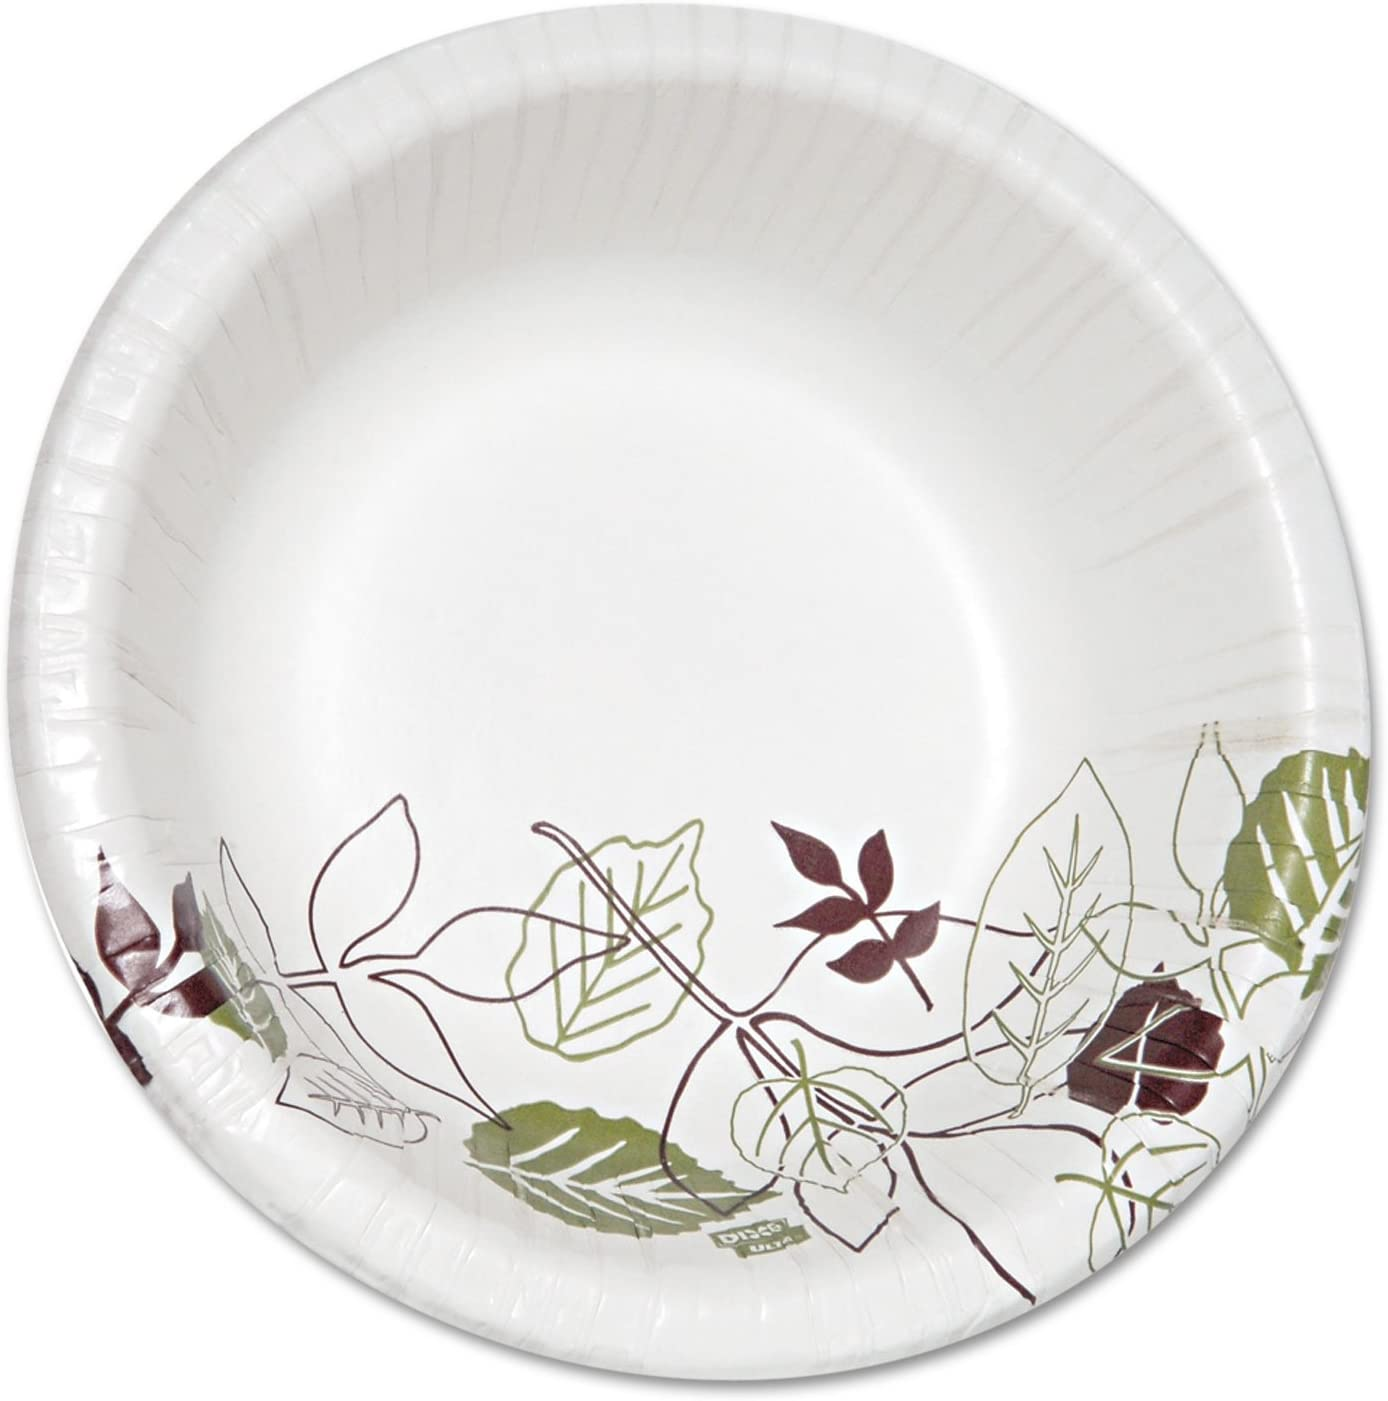 Dixie Ultra Pathways Heavyweight Paper Bowls, 20oz, White/Green/Burgundy, 125/Pack